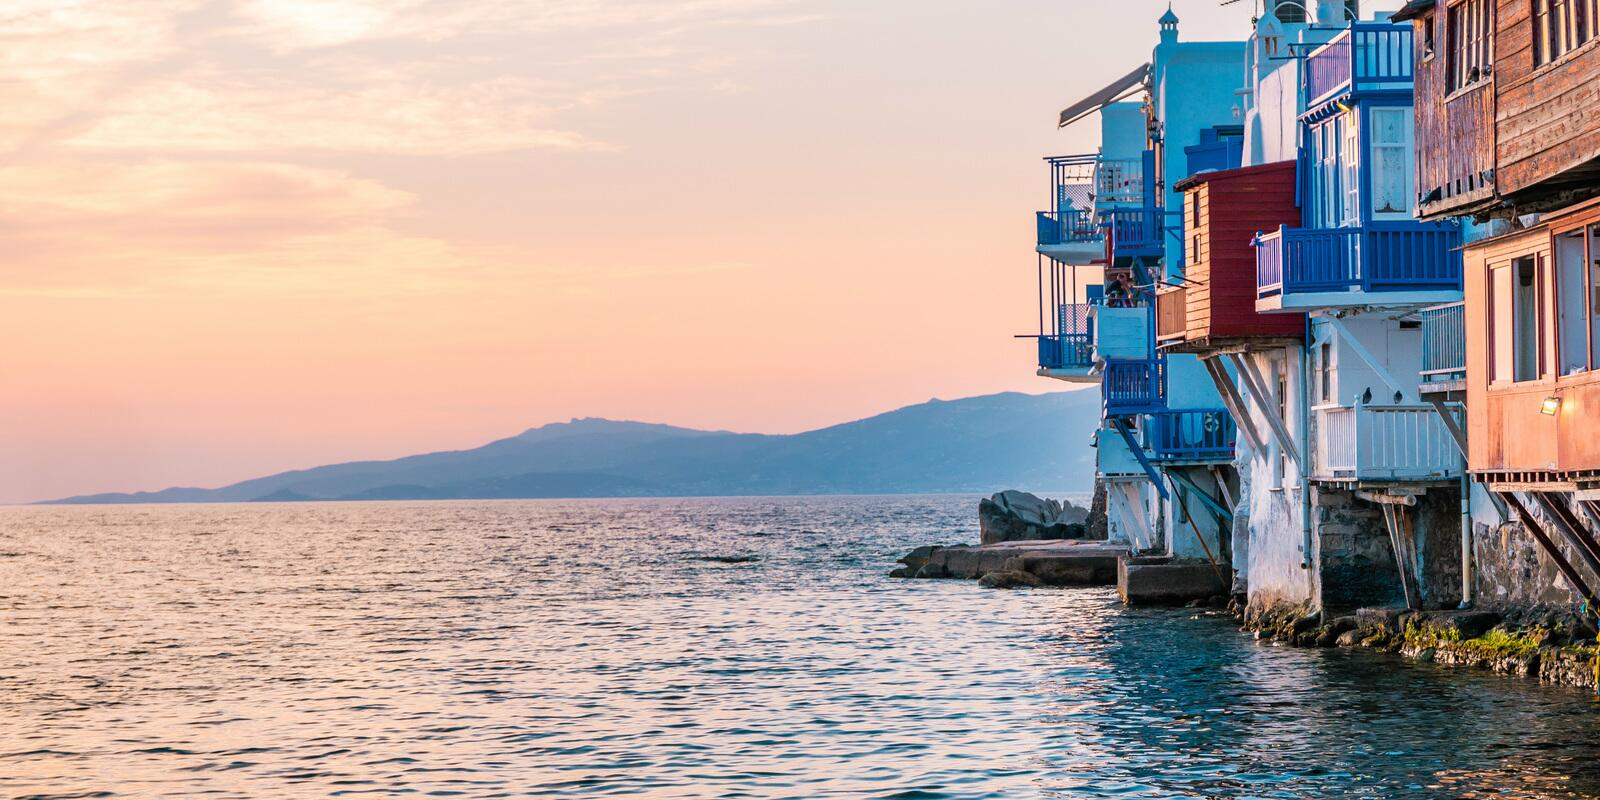 Discover The Hidden Beauty Of The Cyclades Islands